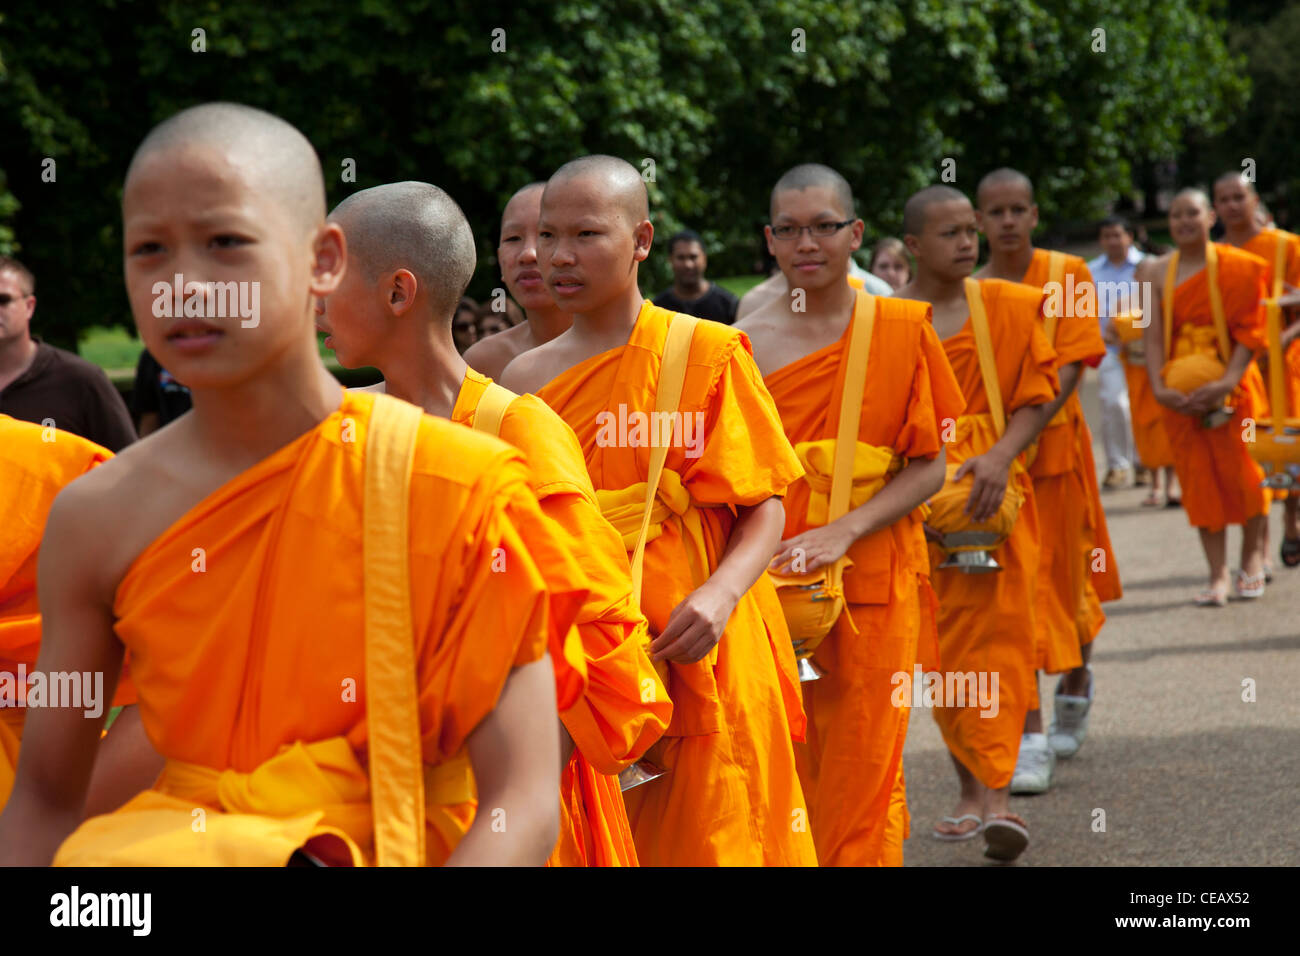 9f5265197a Young Tibetan Buddhist monks wearing orange robes walk through Green Park